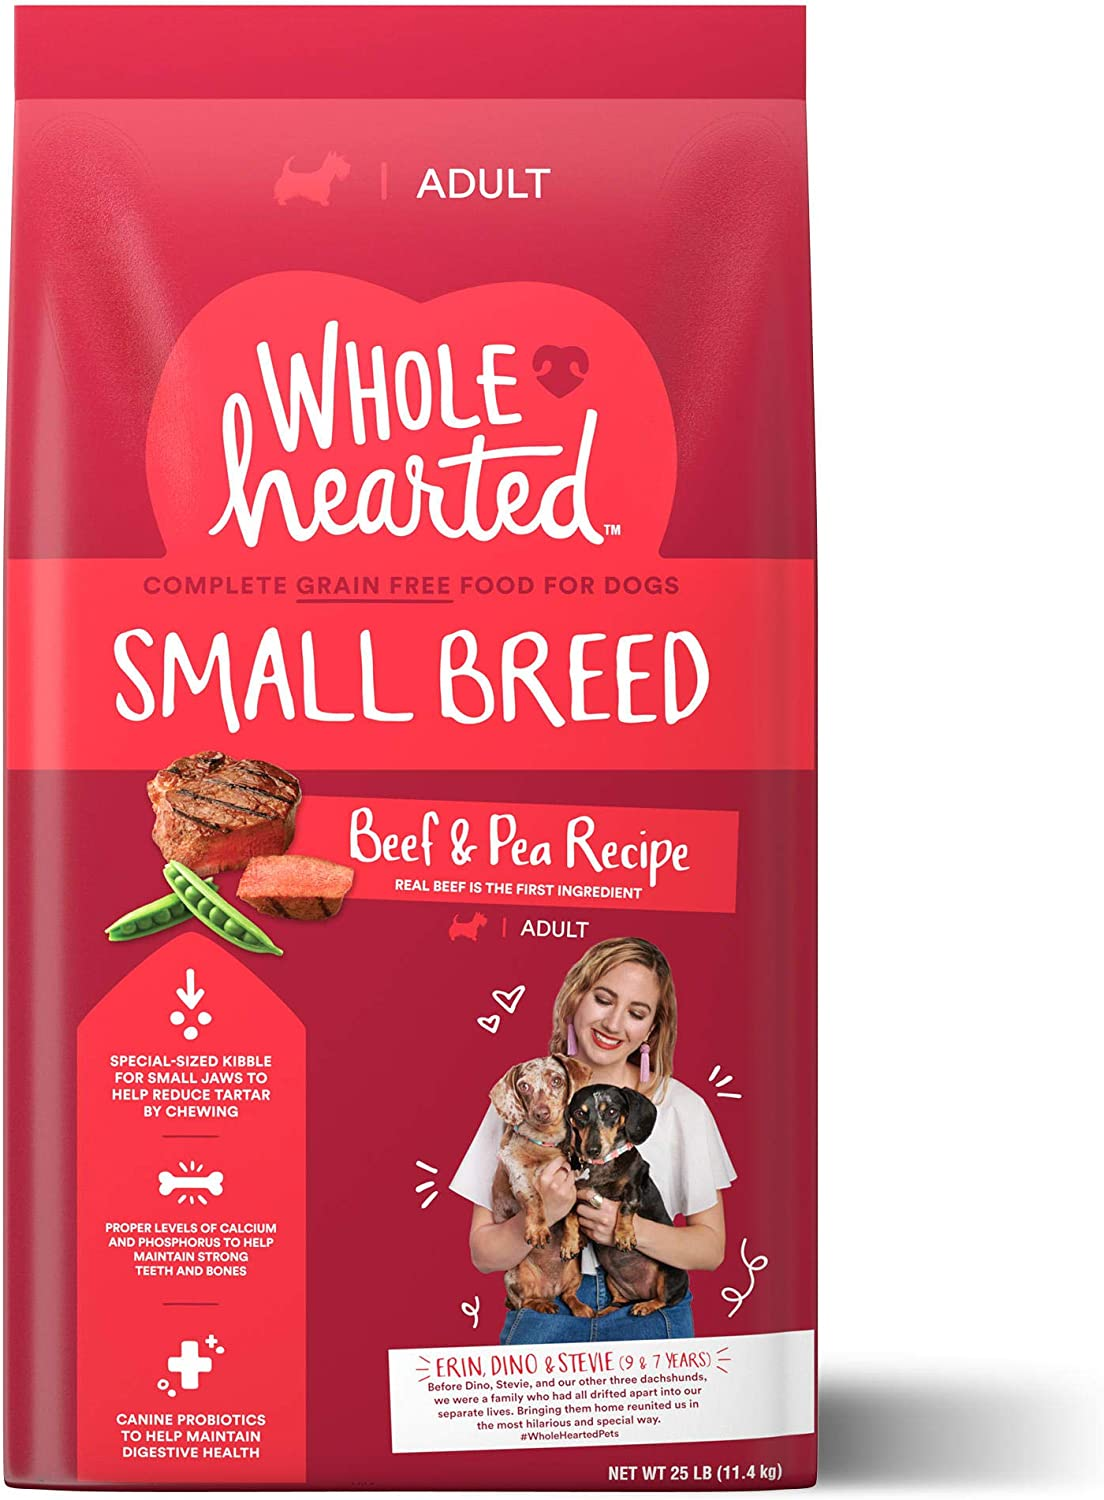 WholeHearted Grain Free Small-Breed Beef and Pea Recipe Adult Dry Dog Food, 25 lbs.